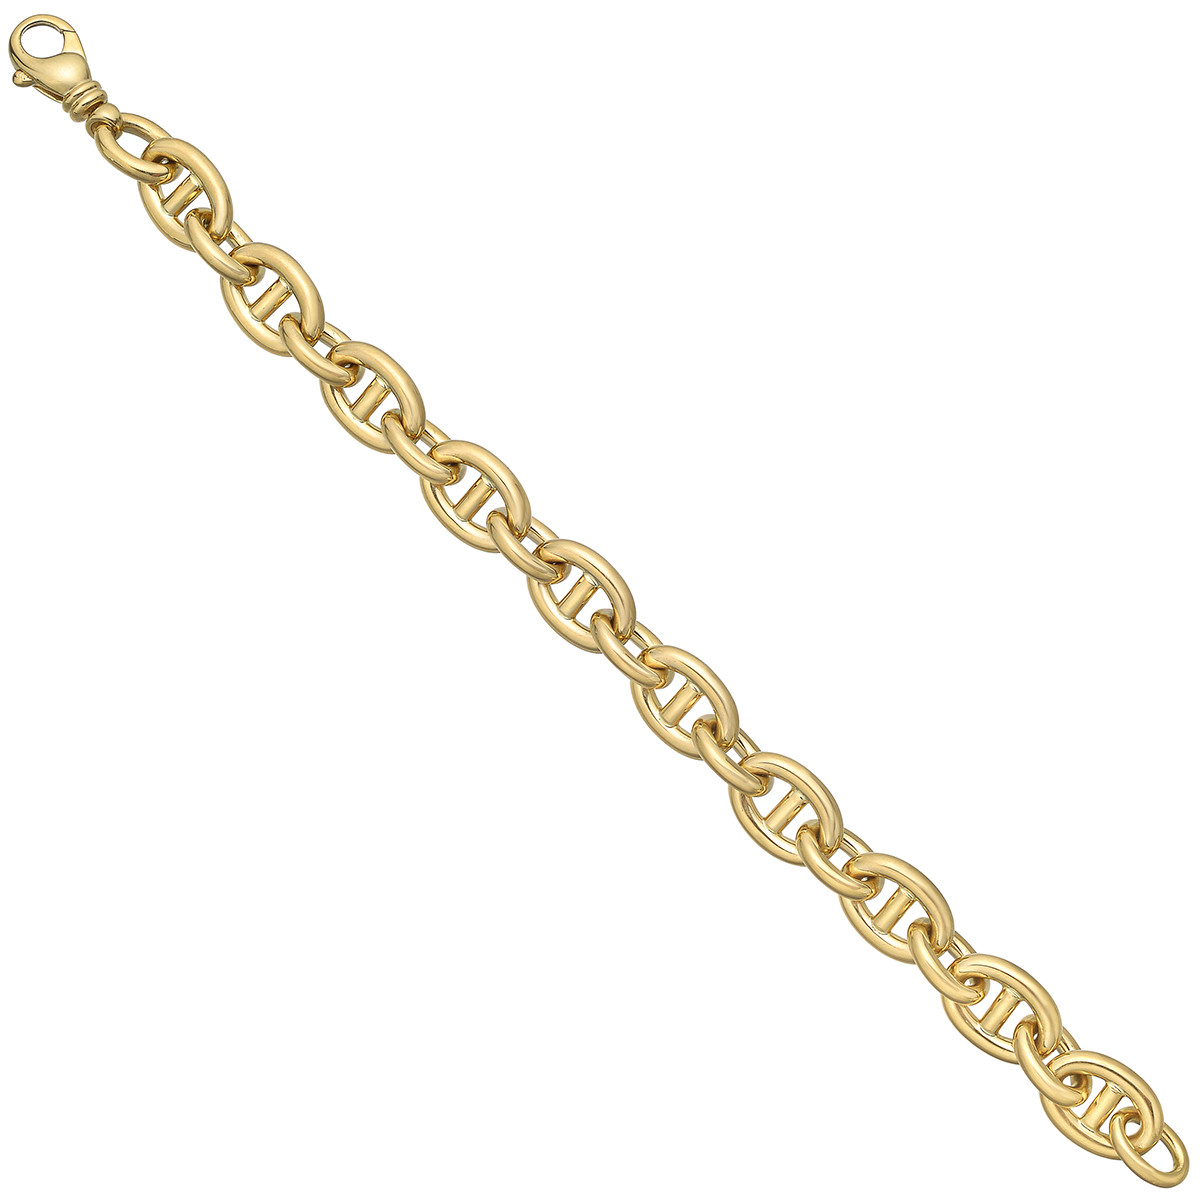 18k Yellow Gold Anchor Link Bracelet